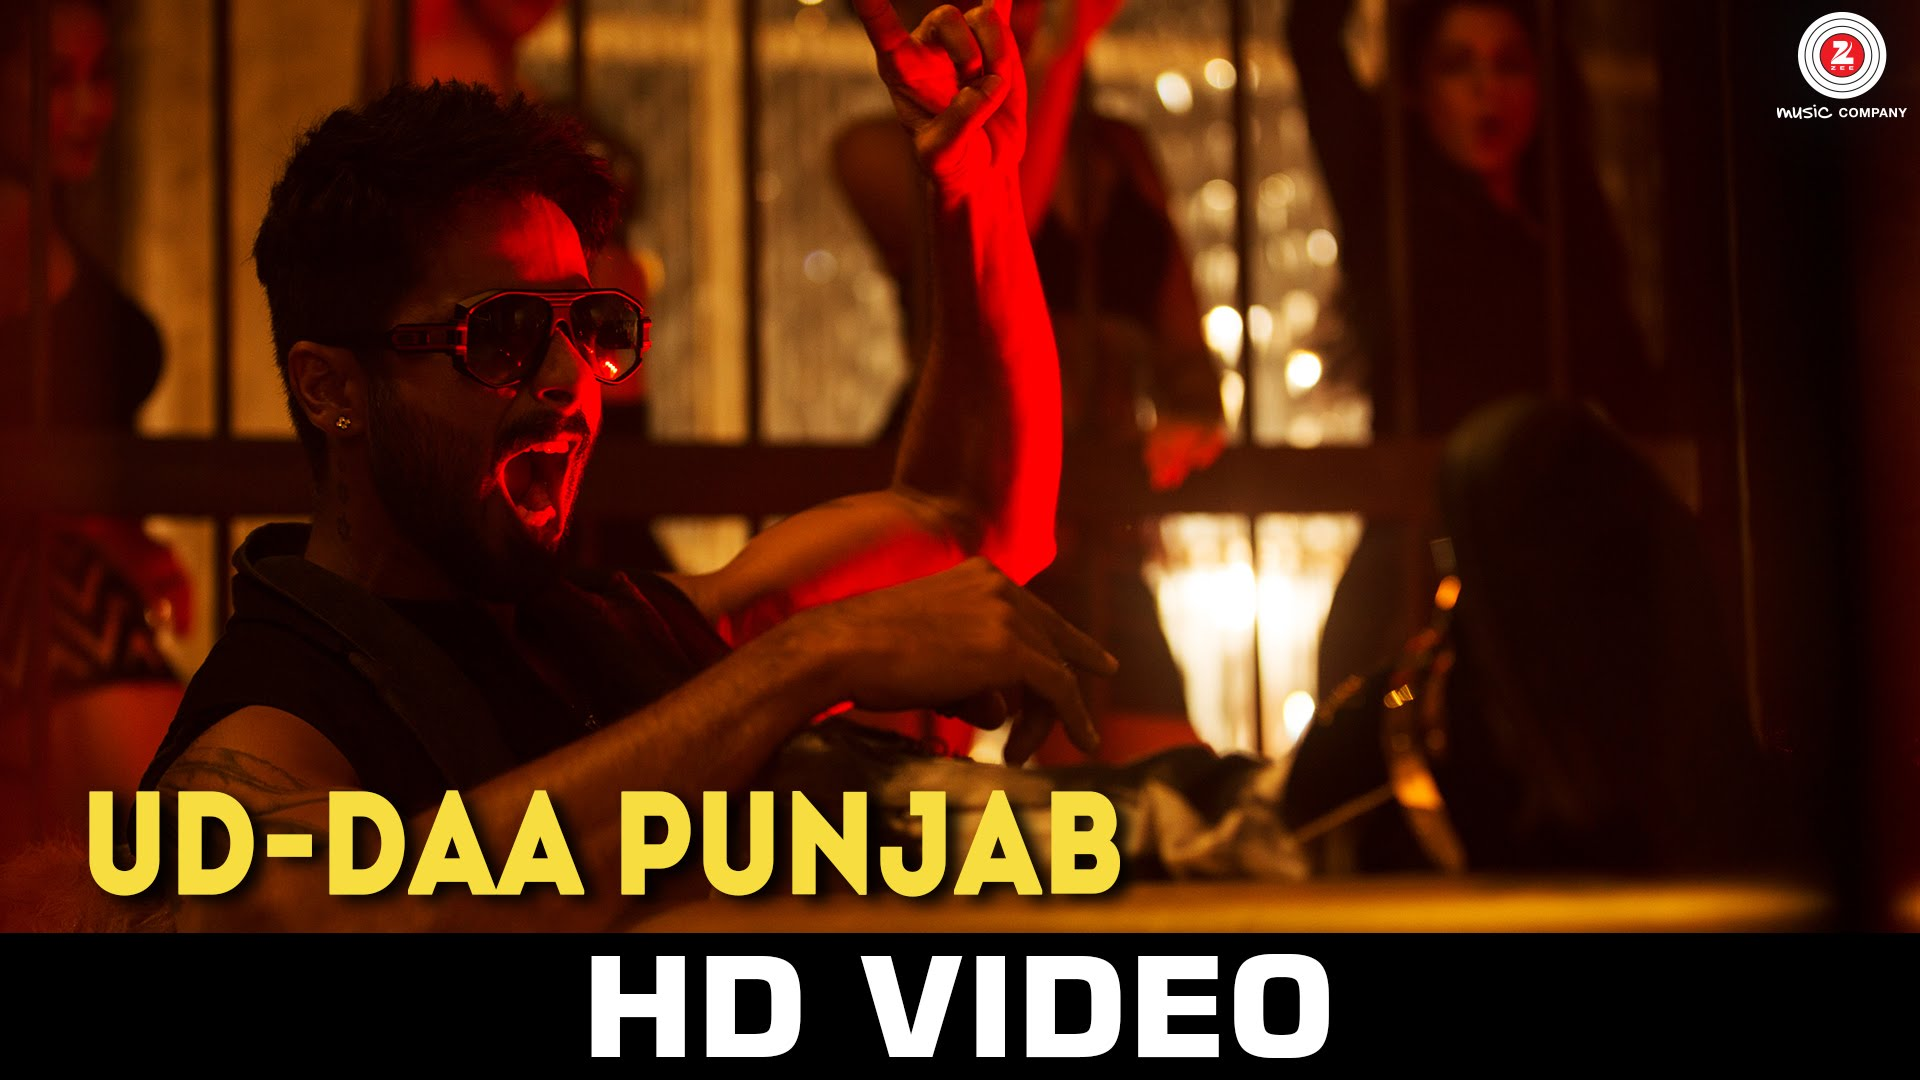 Watch Shahid Kapoor's Unbeatable Energy 'Ud-Daa Punjab' Song From Udta Punjab